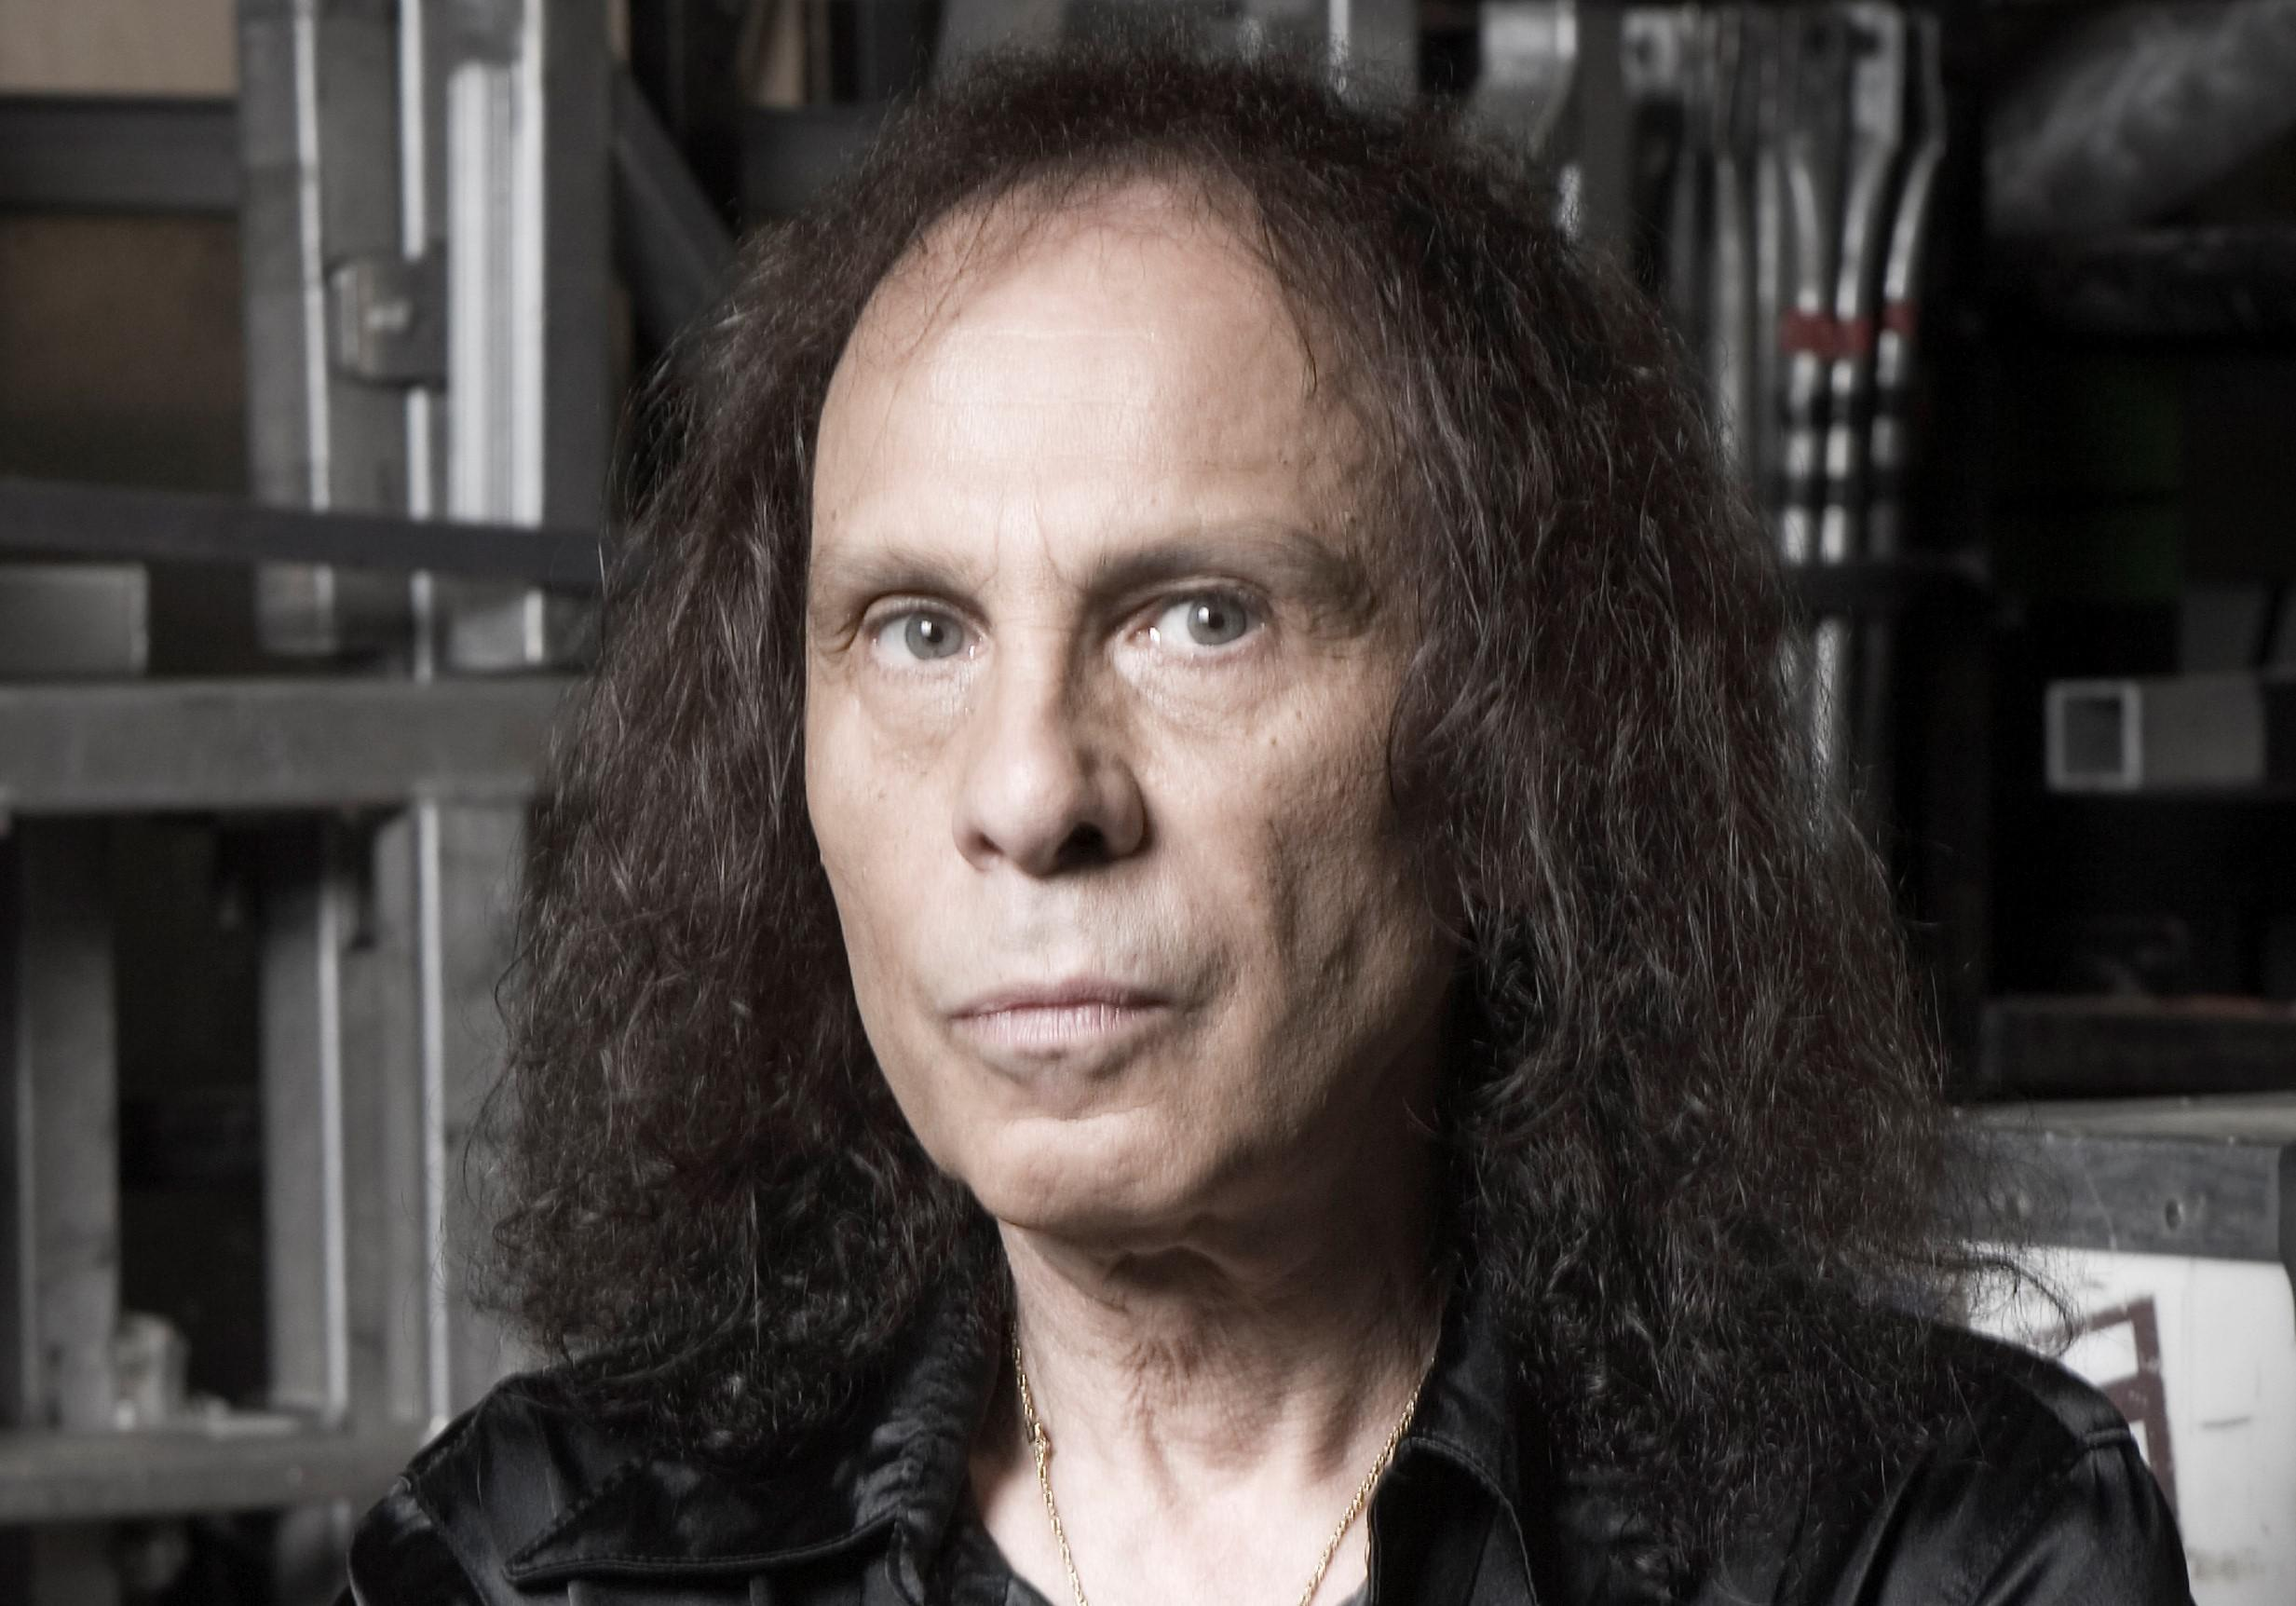 RONNIE JAMES DIO – ROCK TILL DEATH